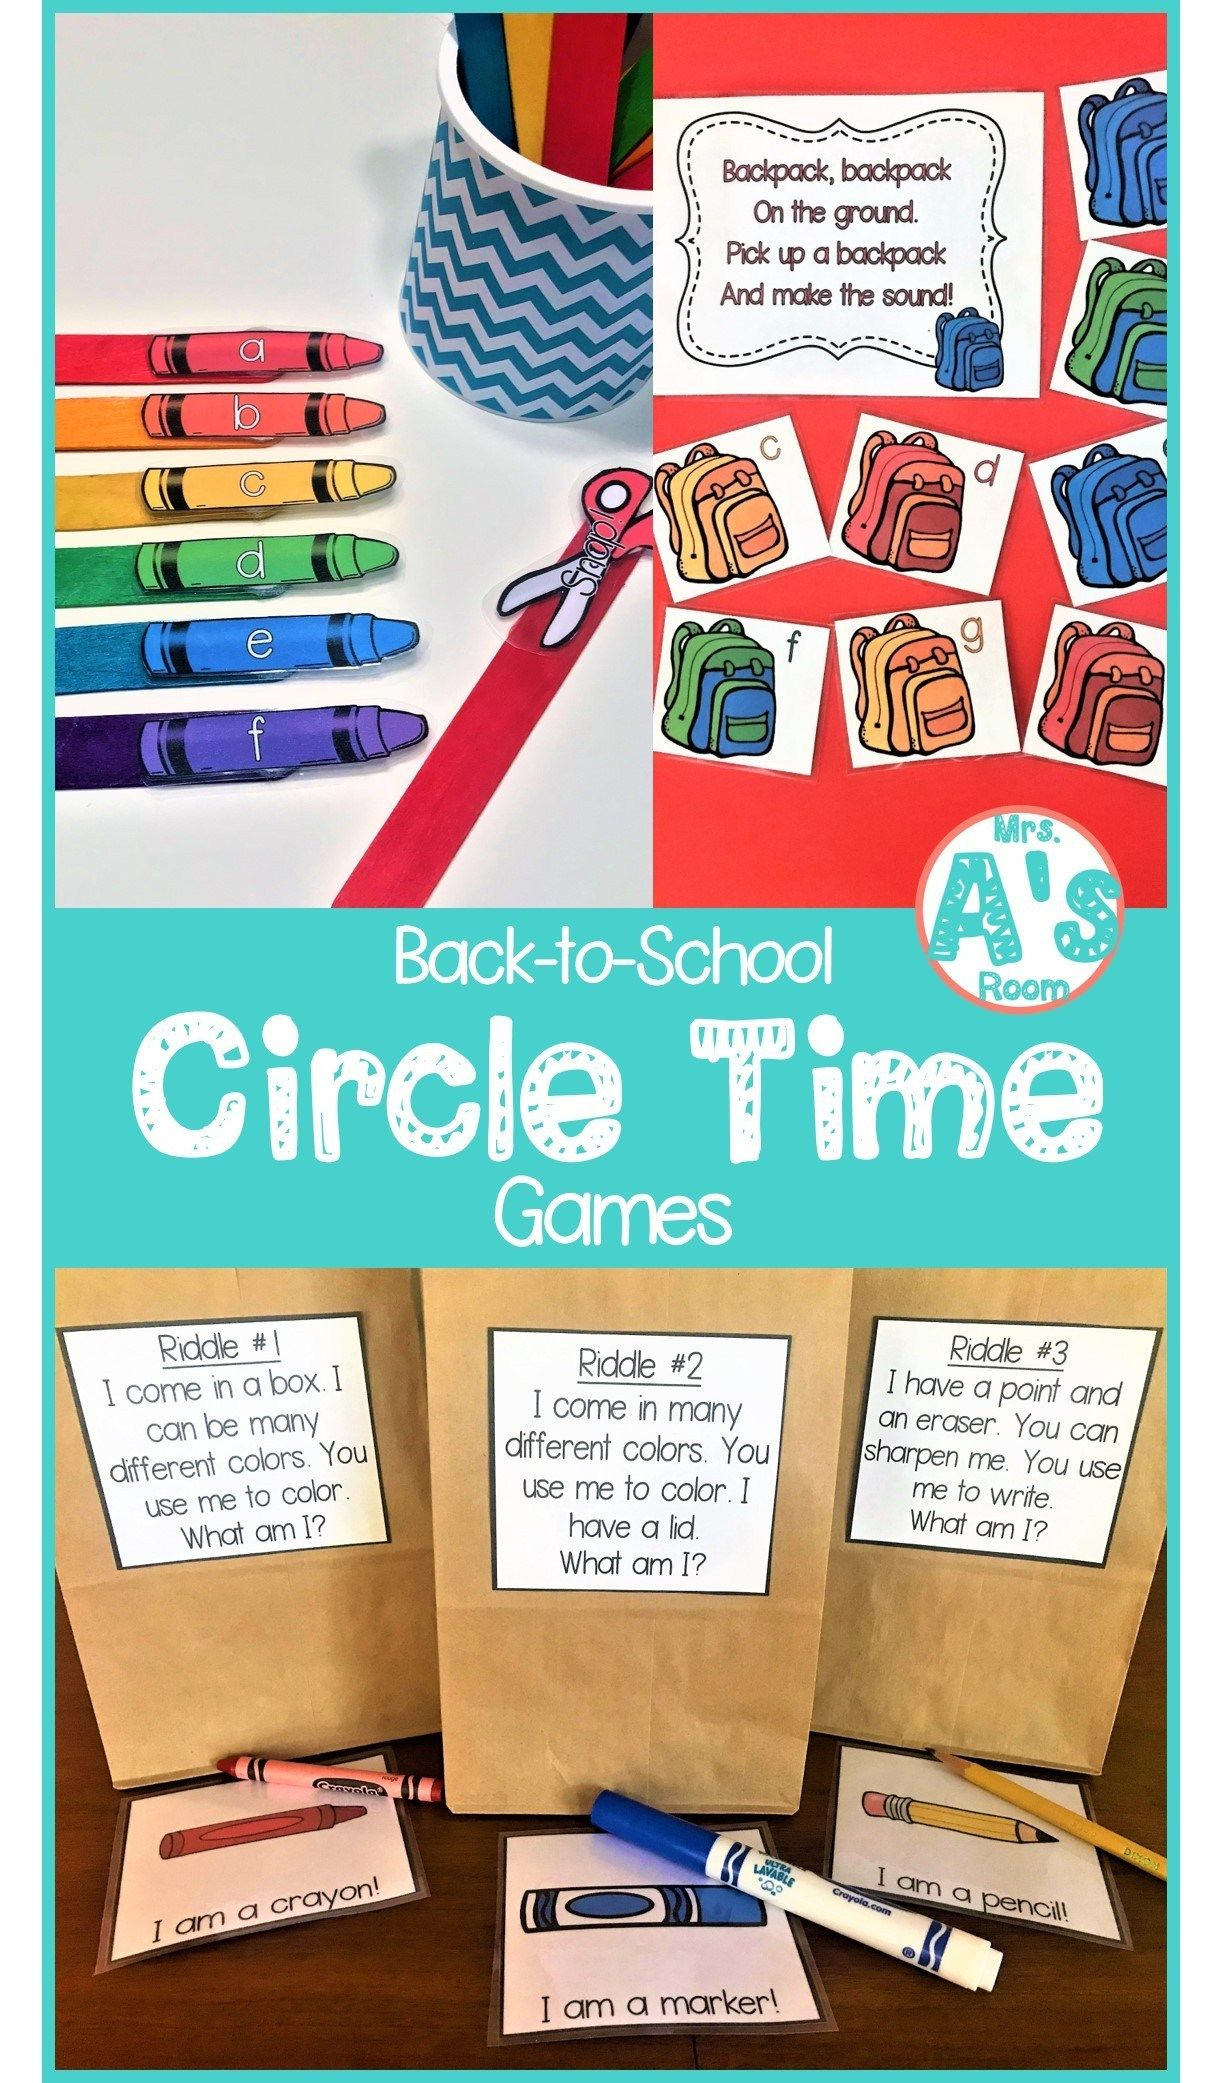 Circle Time Games For Back-to-school   Kindergarten   Circle Time